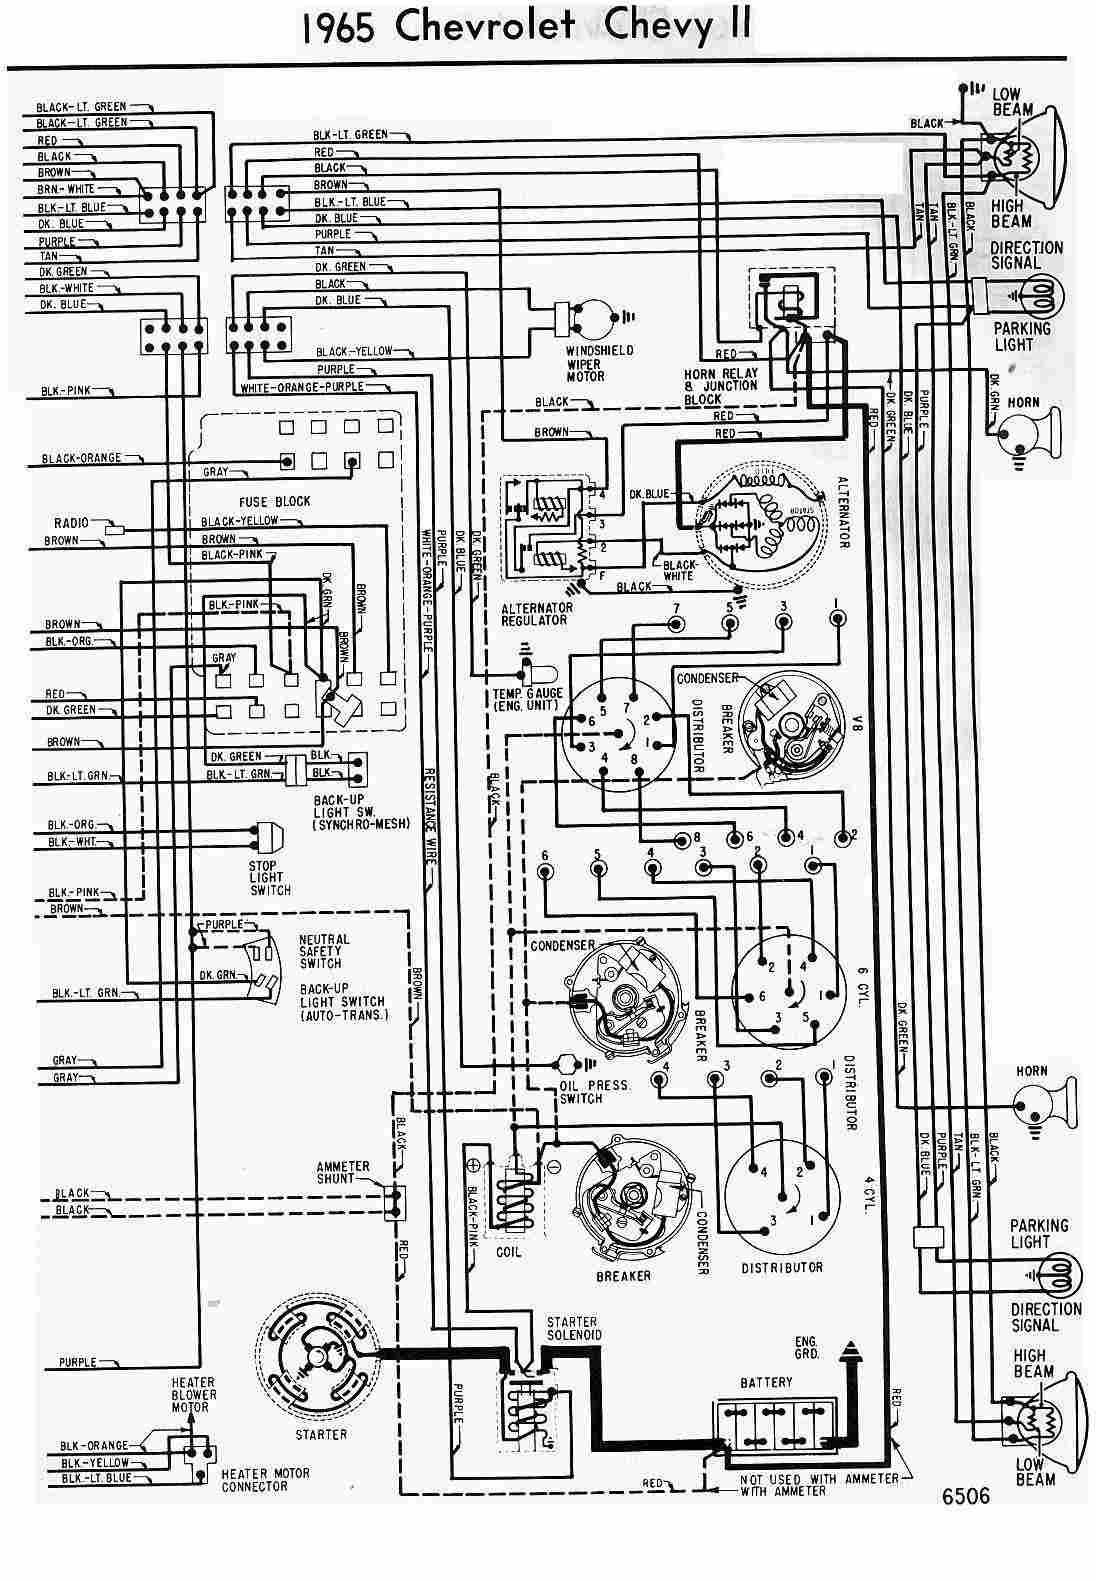 Chevrolet Car Manuals Wiring Diagrams Pdf Fault Codes Lamborghini Engine Download